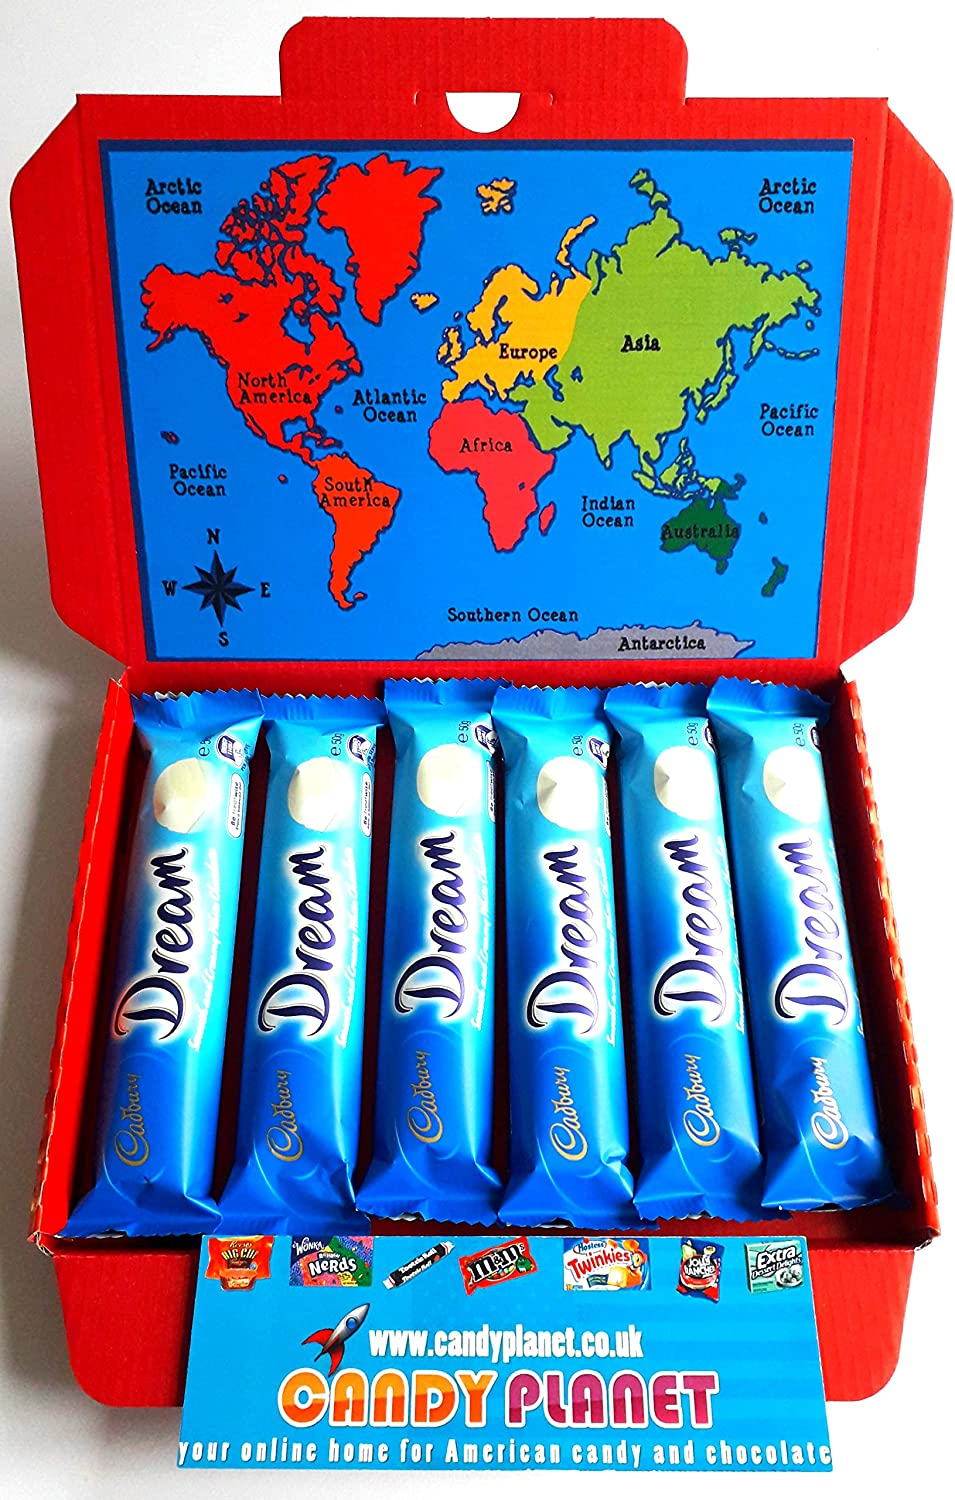 Cadbury Dream White Chocolate Bar 50g X6 Retro Rare Uk Sweets Australian Chocolate Lolly Candy Sweets Hamper Exclusive To Candyplanet